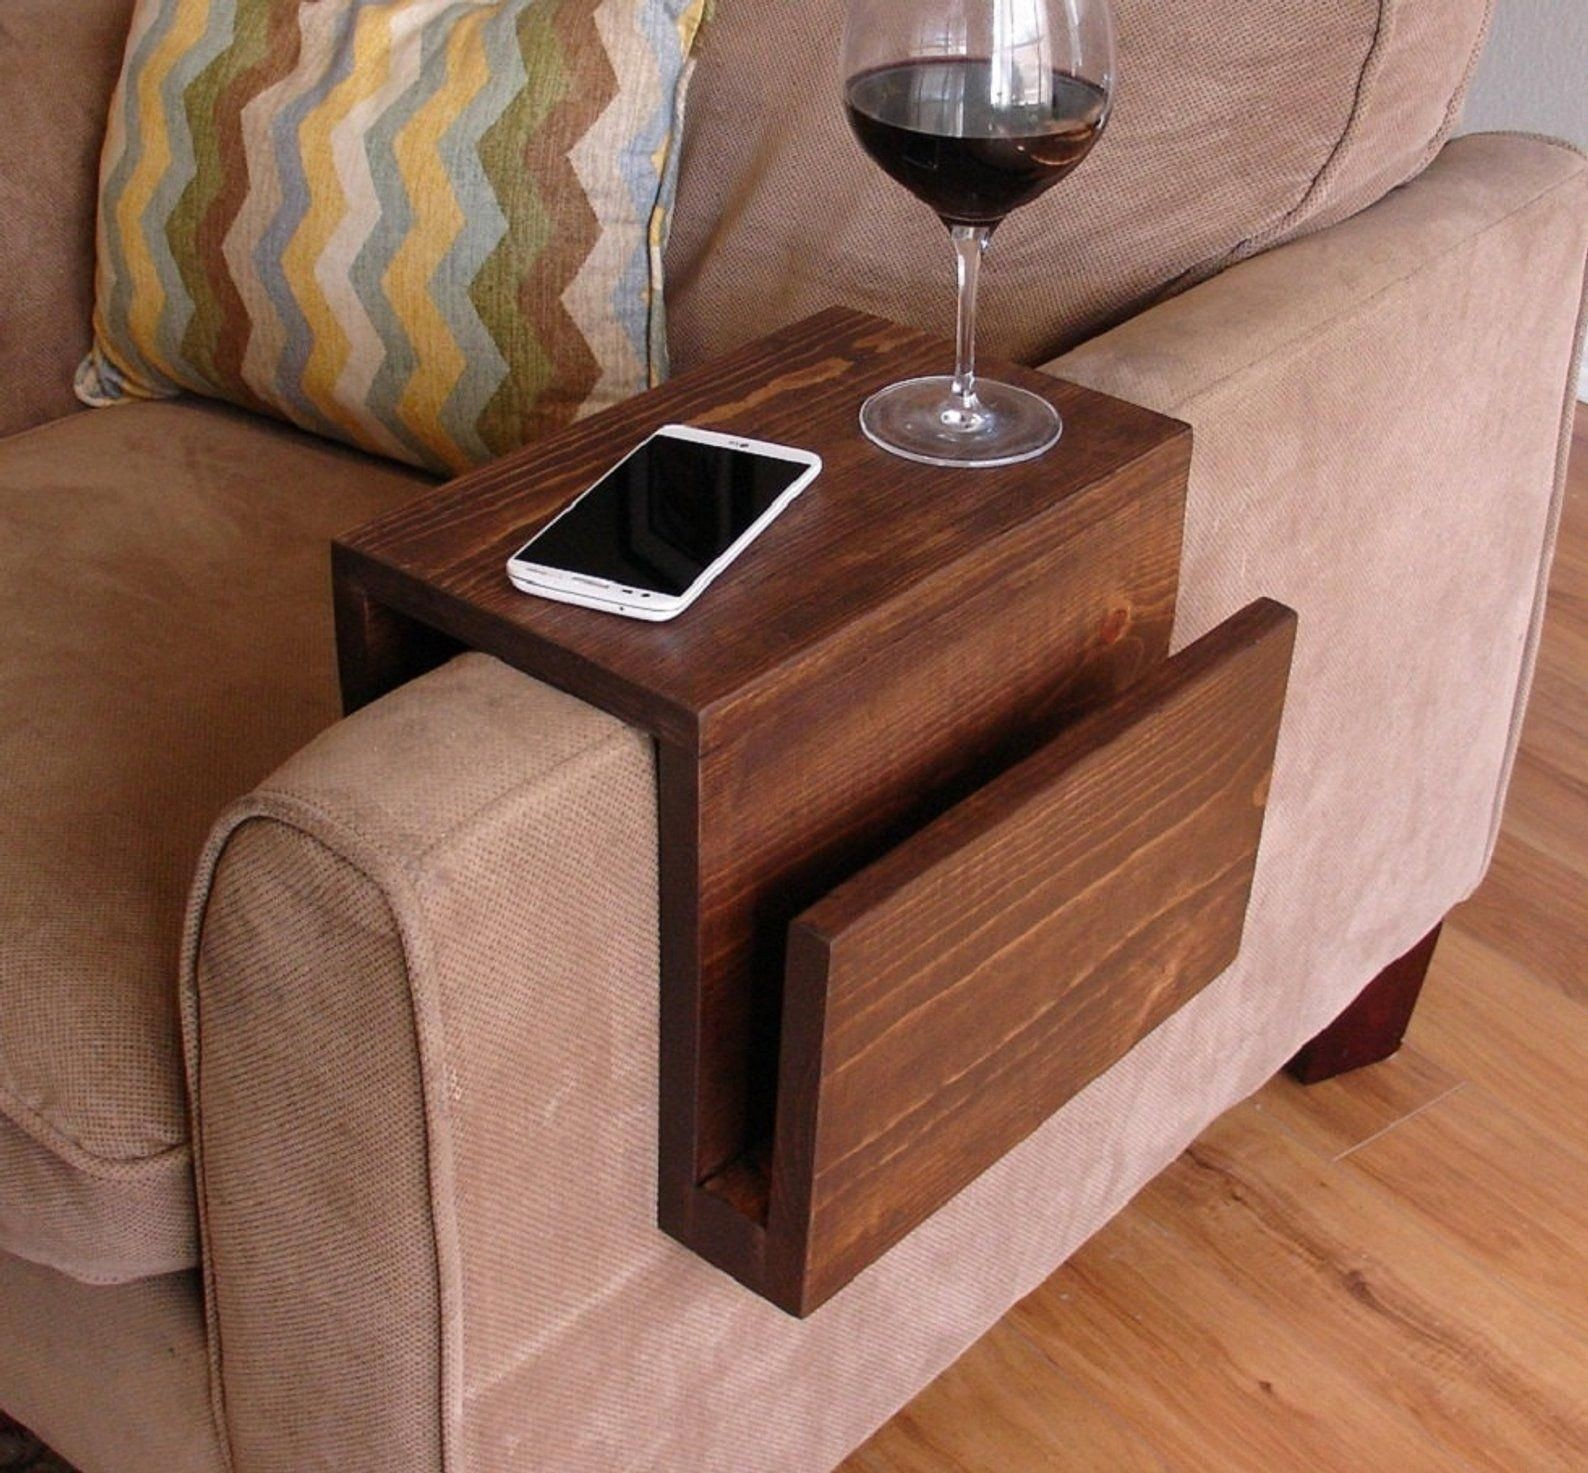 Simply Awesome Couch Sofa Arm Rest Wrap